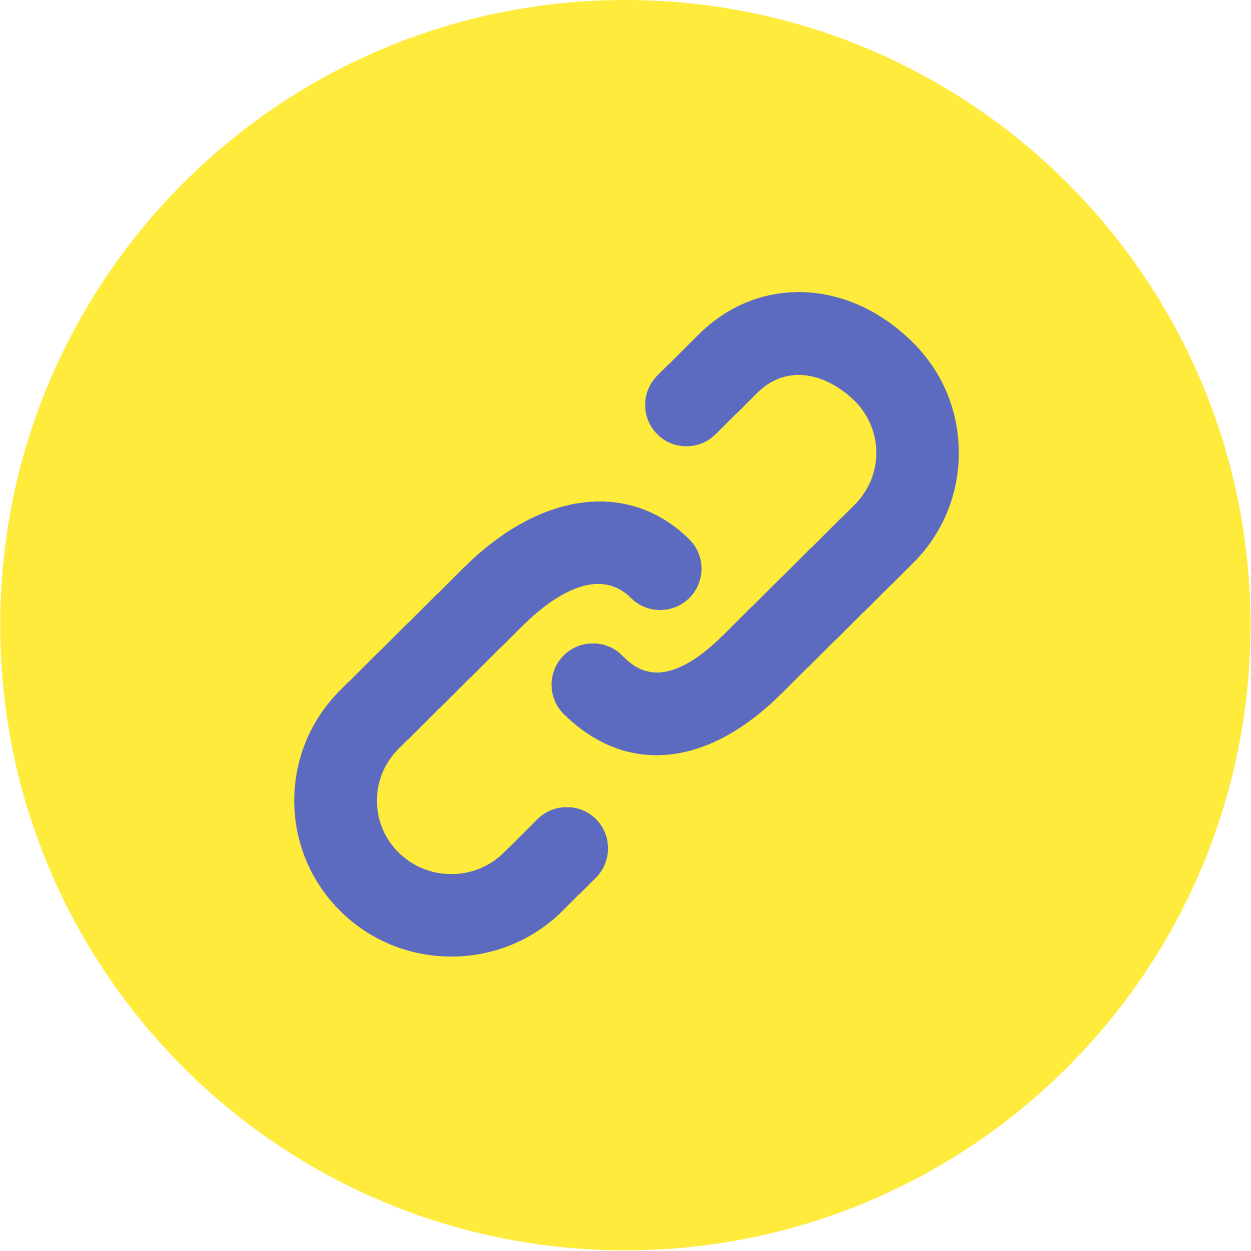 Rounded paperclip icon